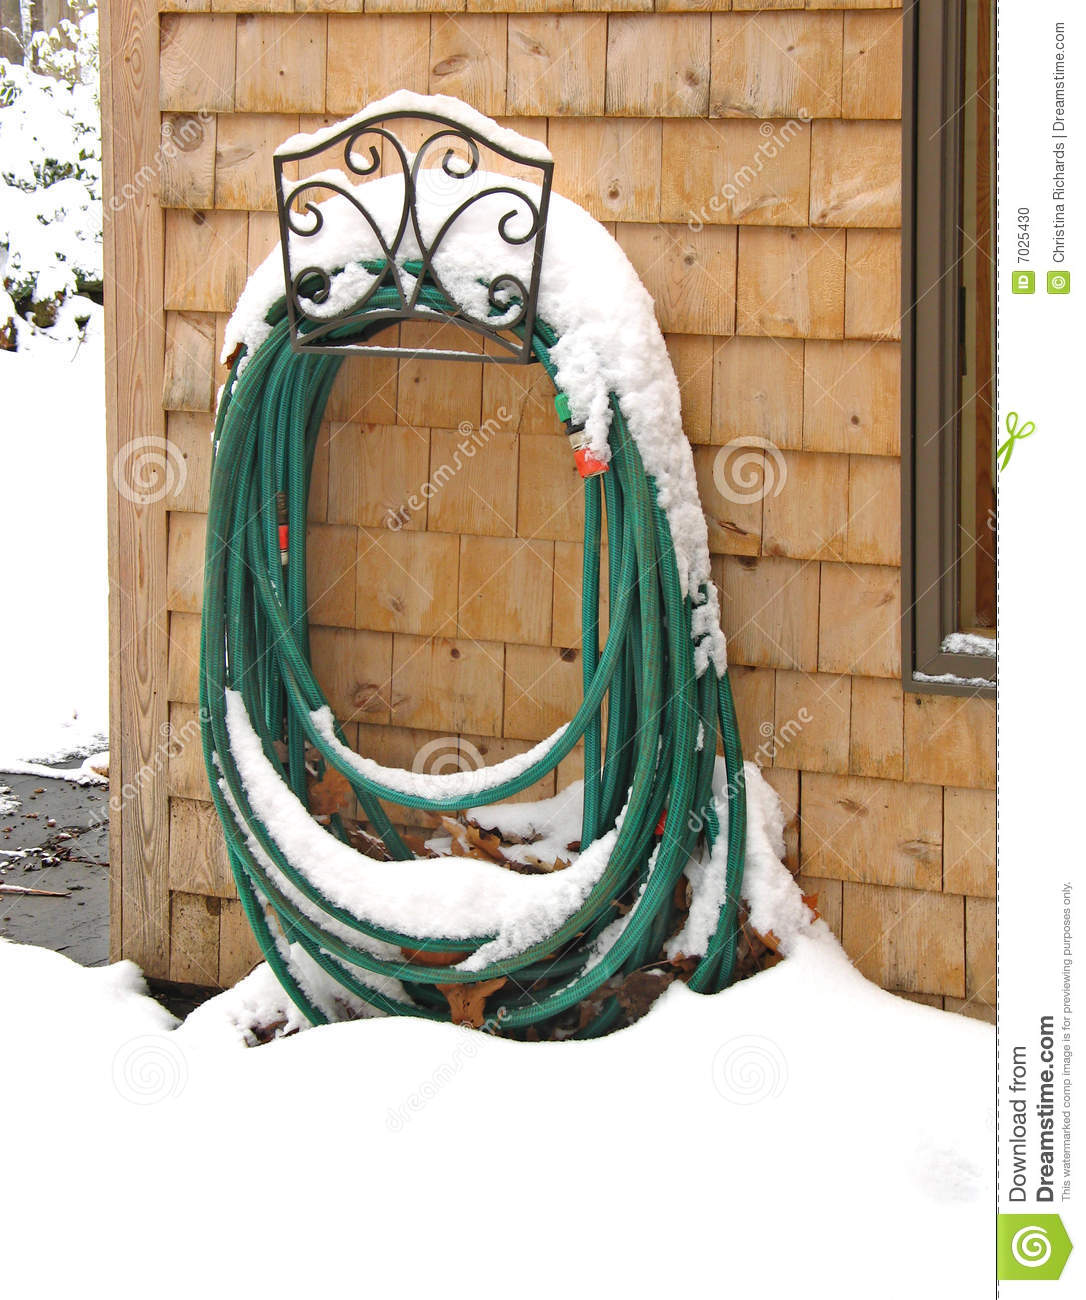 Winter rated hose